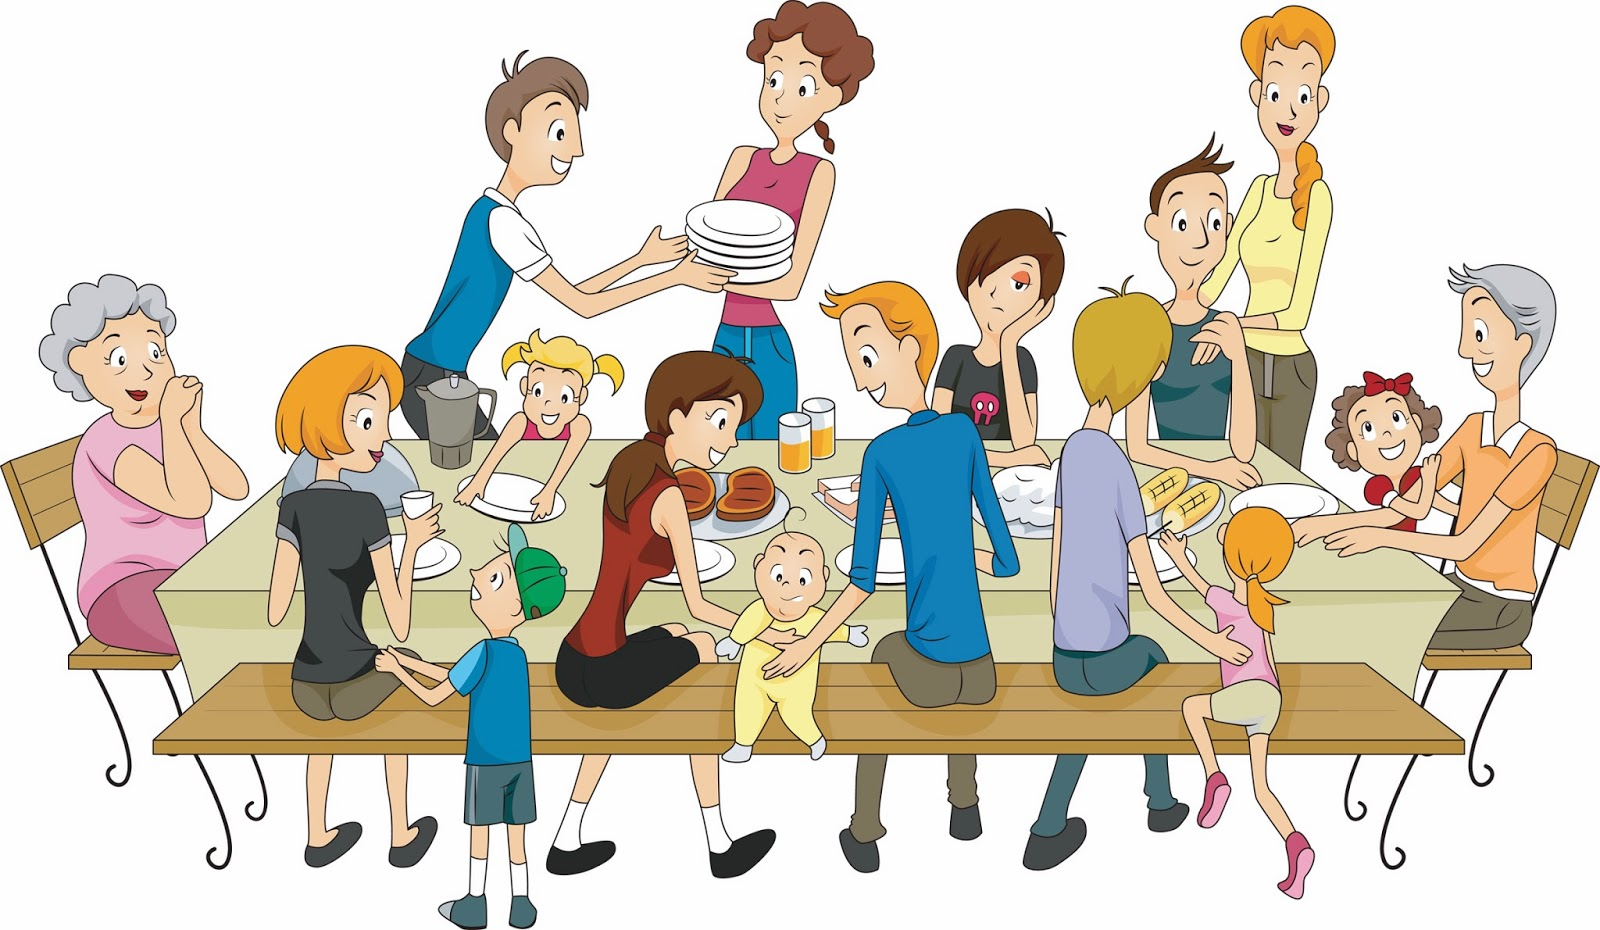 Family clipart free clipart image 9-Family clipart free clipart image 9-13